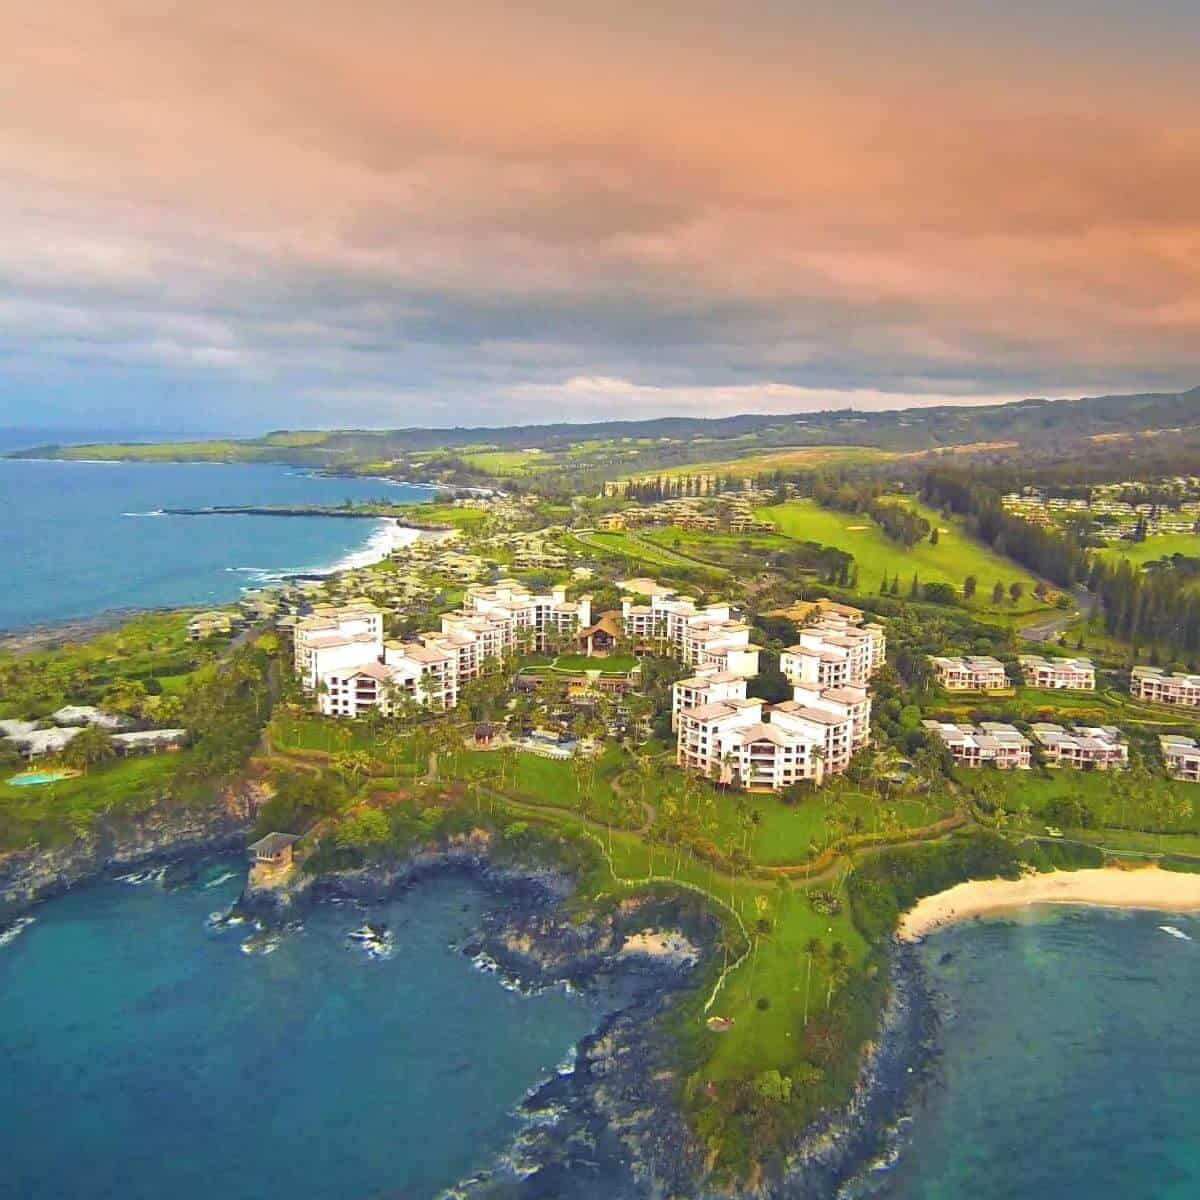 Aerial view of Montage Kapalua Bay hotel.